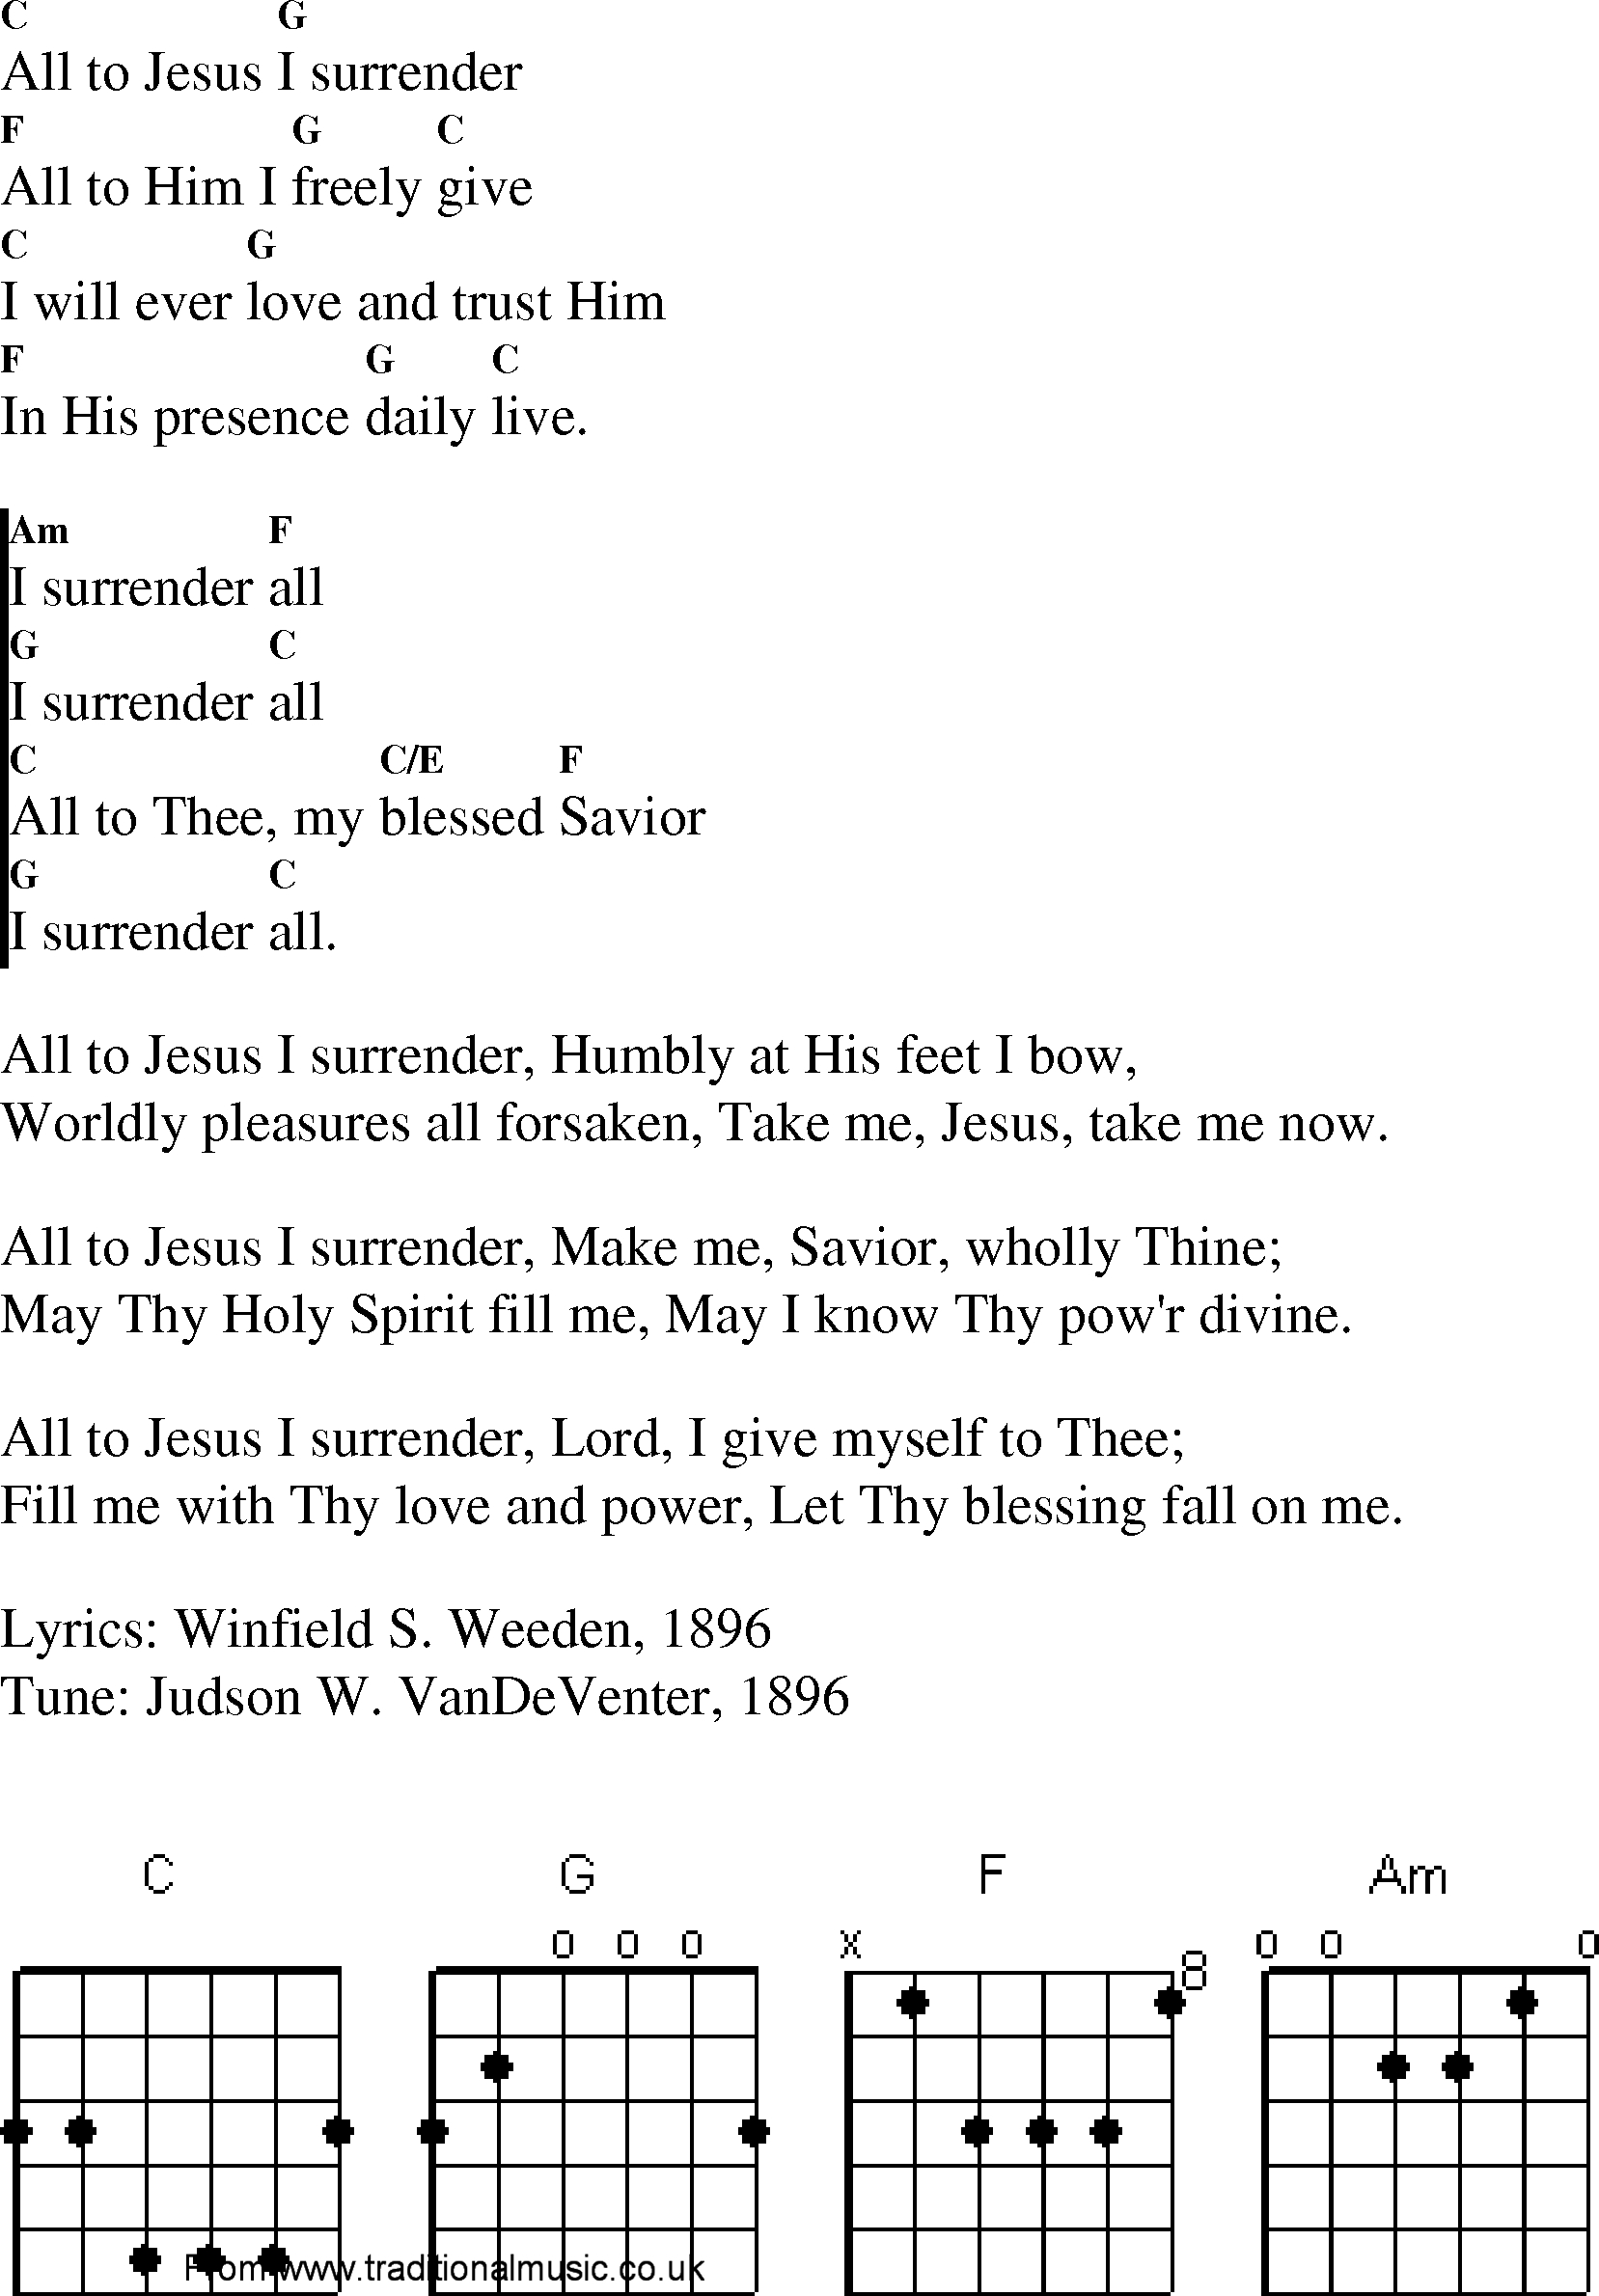 I Surrender Chords Christian Gospel Worship Song Lyrics With Chords I Surrender All